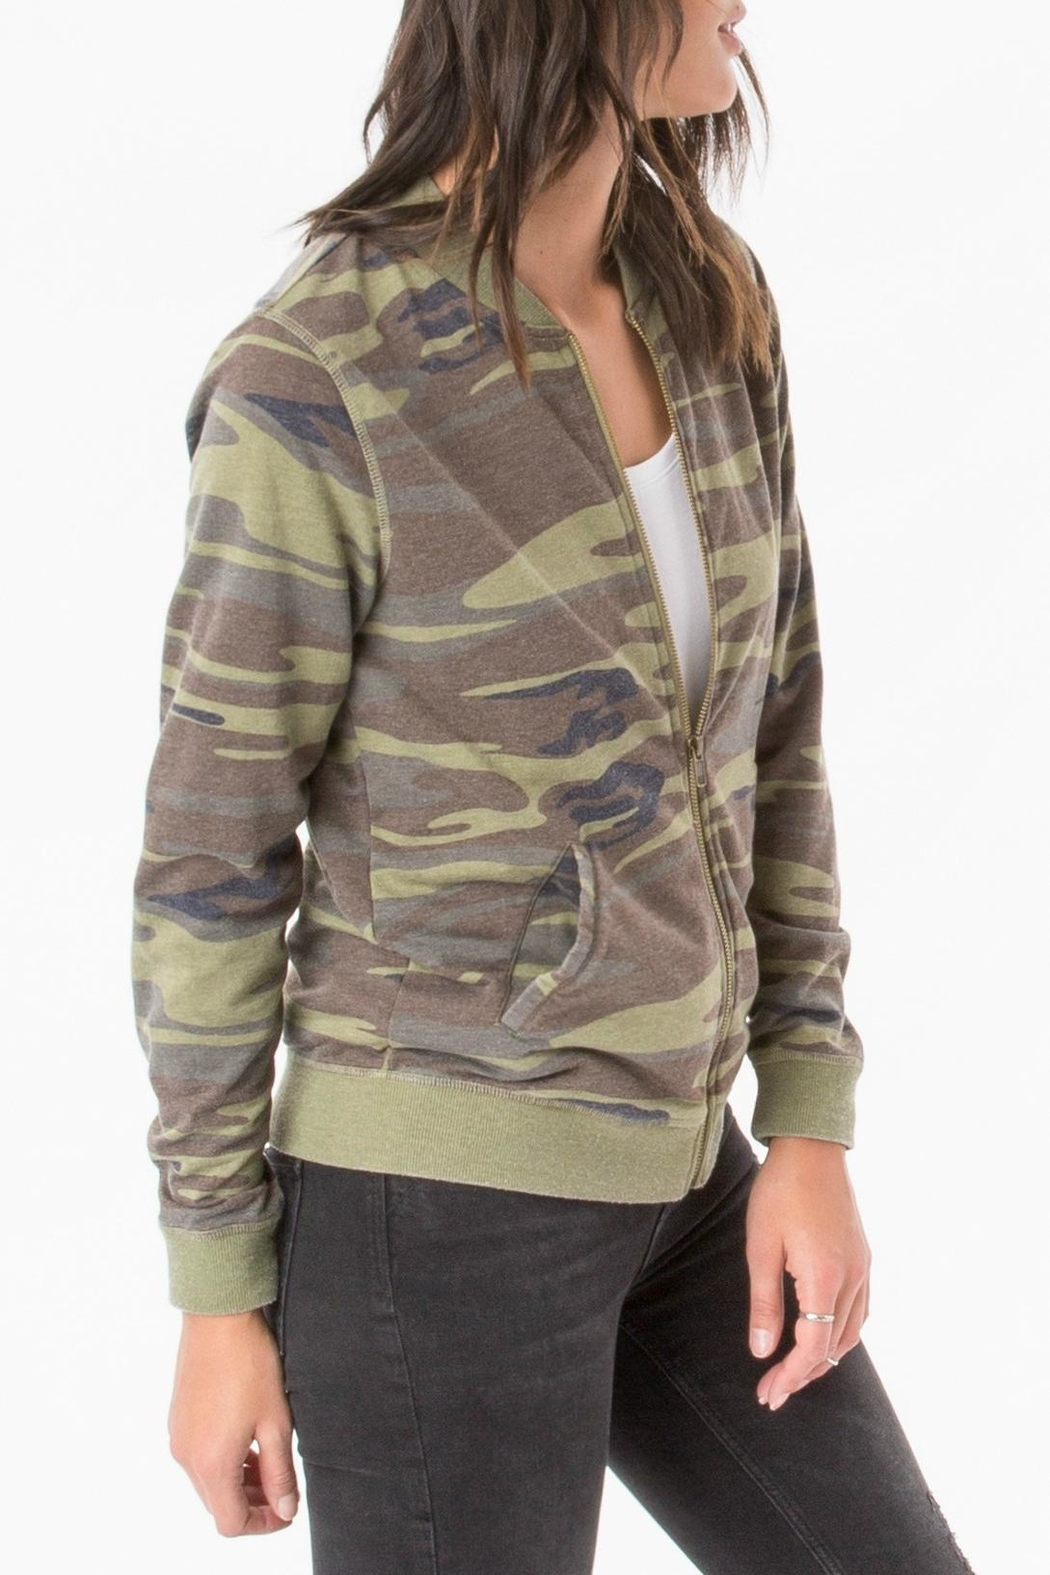 z supply Camo Zip Up Jacket - Front Cropped Image